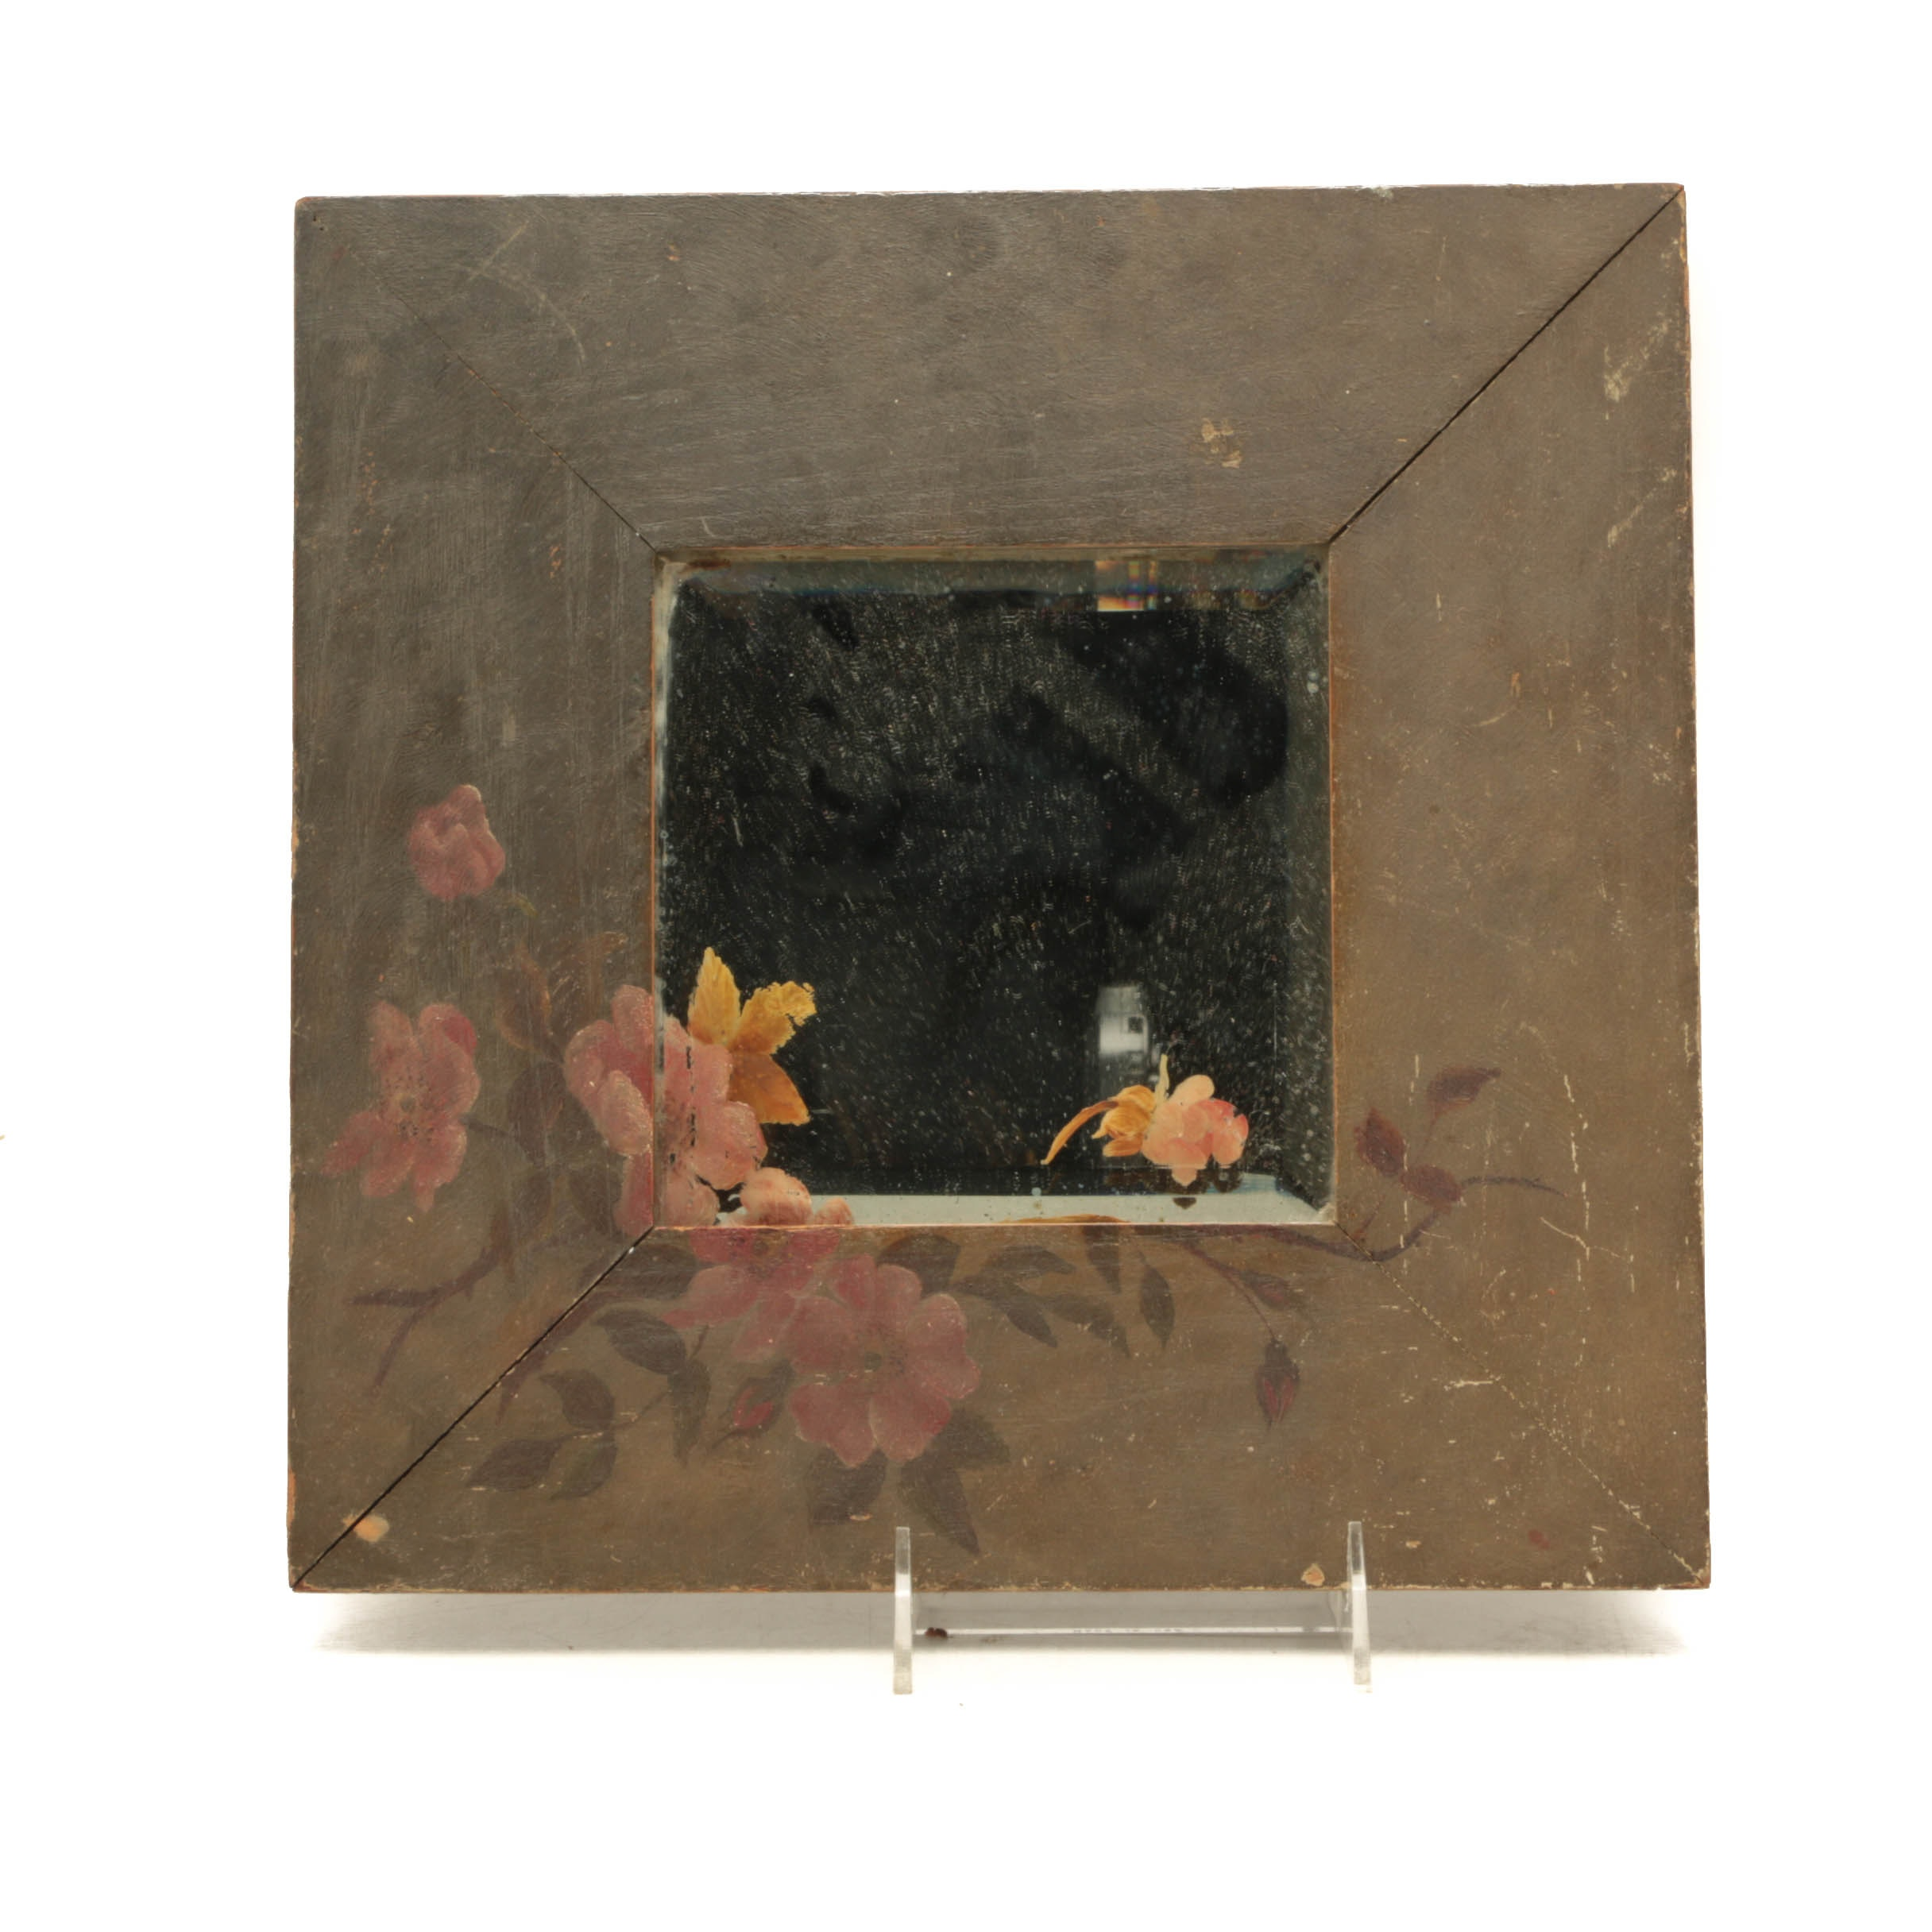 Antique Hand-Painted Wall Mirror